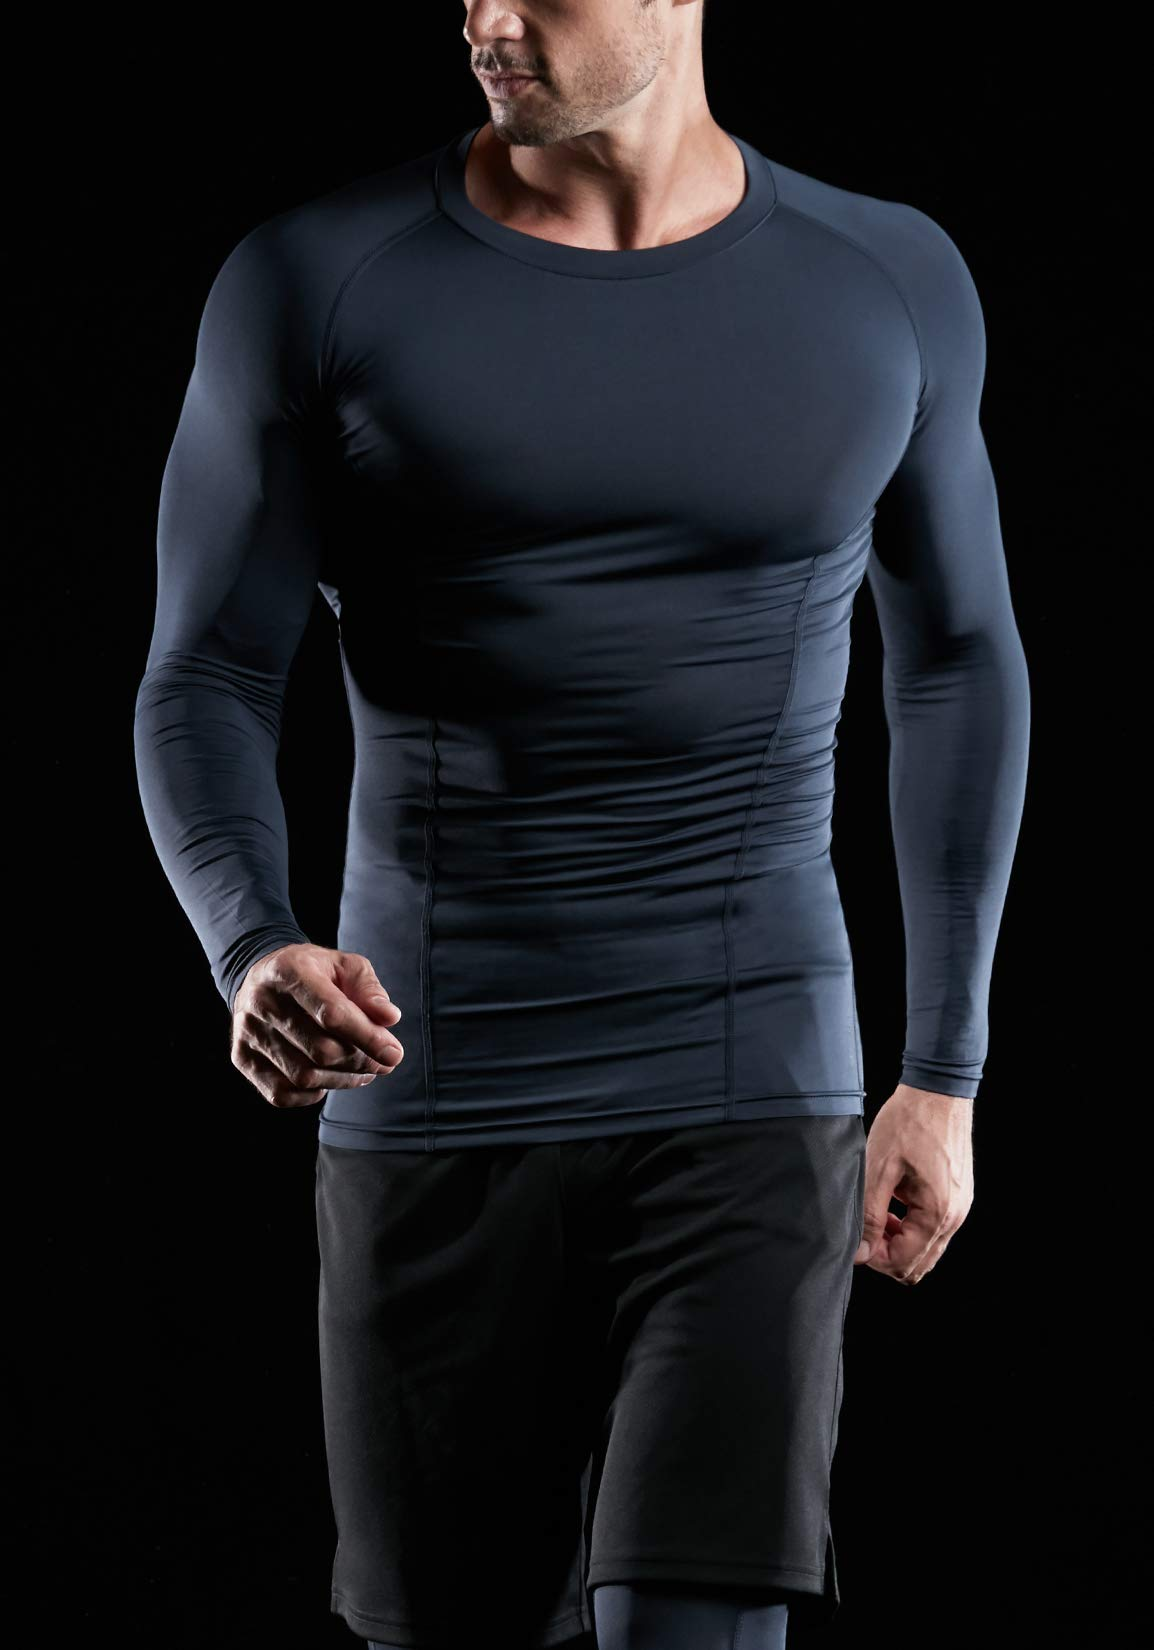 ATHLIO AO-BLS01-KCW_Large Men's (Pack of 3) Cool Dry Compression Long Sleeve Baselayer Athletic Sports T-Shirts Tops BLS01 by ATHLIO (Image #4)